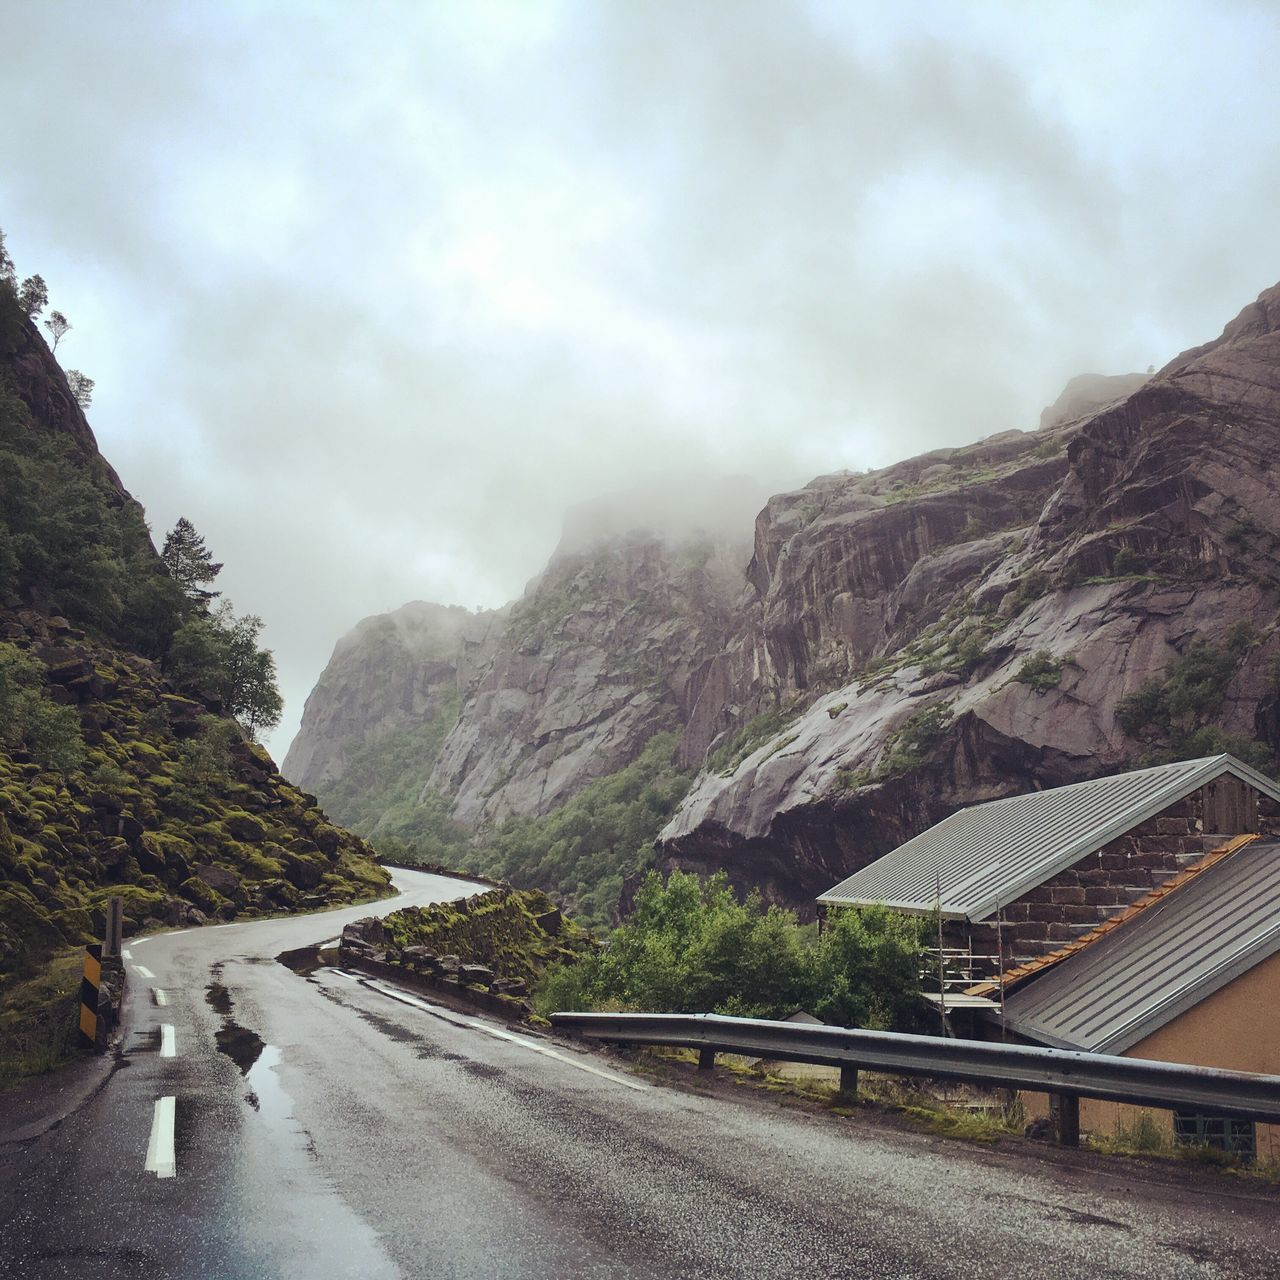 Jøssingfjorden, Norway Mountain Road Beauty In Nature Day Nature Sky Outdoors Landscape No People Mountain Range Winding Road Mountain Road Scenics Norway🇳🇴 Norway Tranquility Travel Destinations Travel Street Jøssingfjorden Exploring Nature Nature_collection Nature Photography